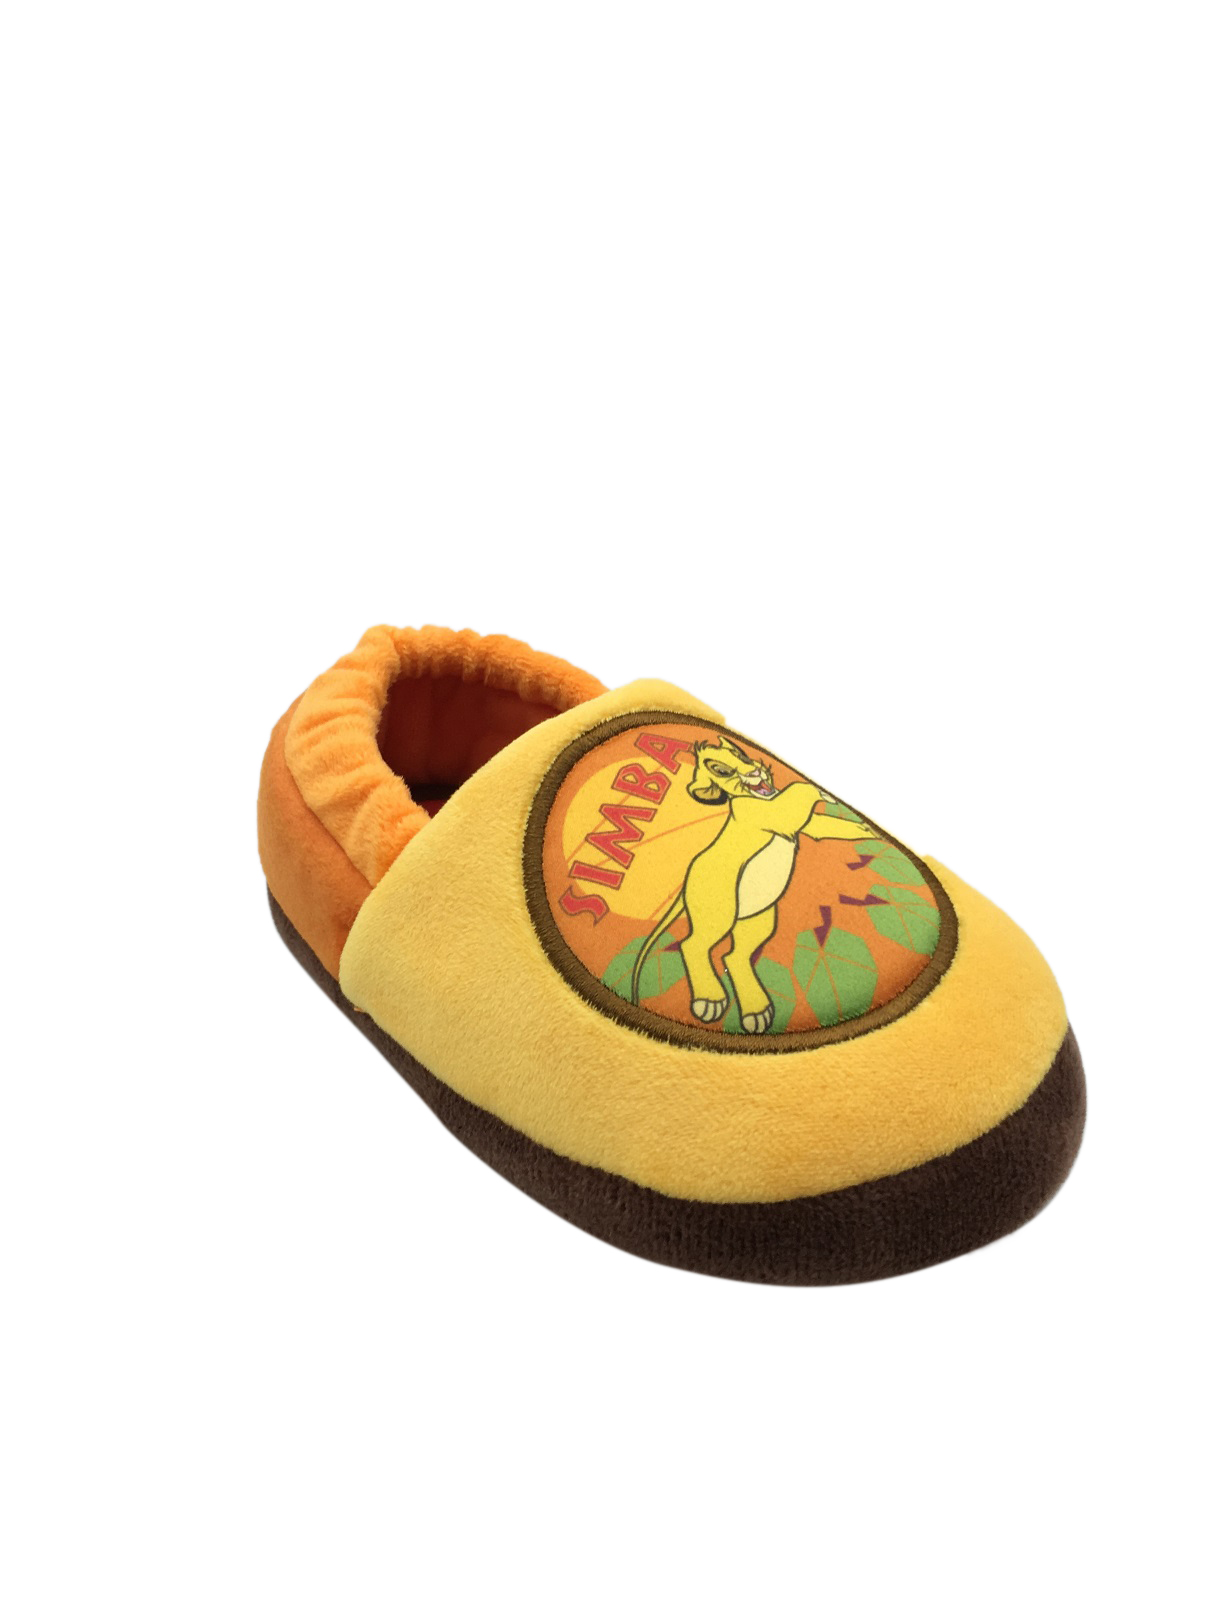 New Toddler size 7-8 Simba The Lion King Slipeers Boys Girls Hard Sole